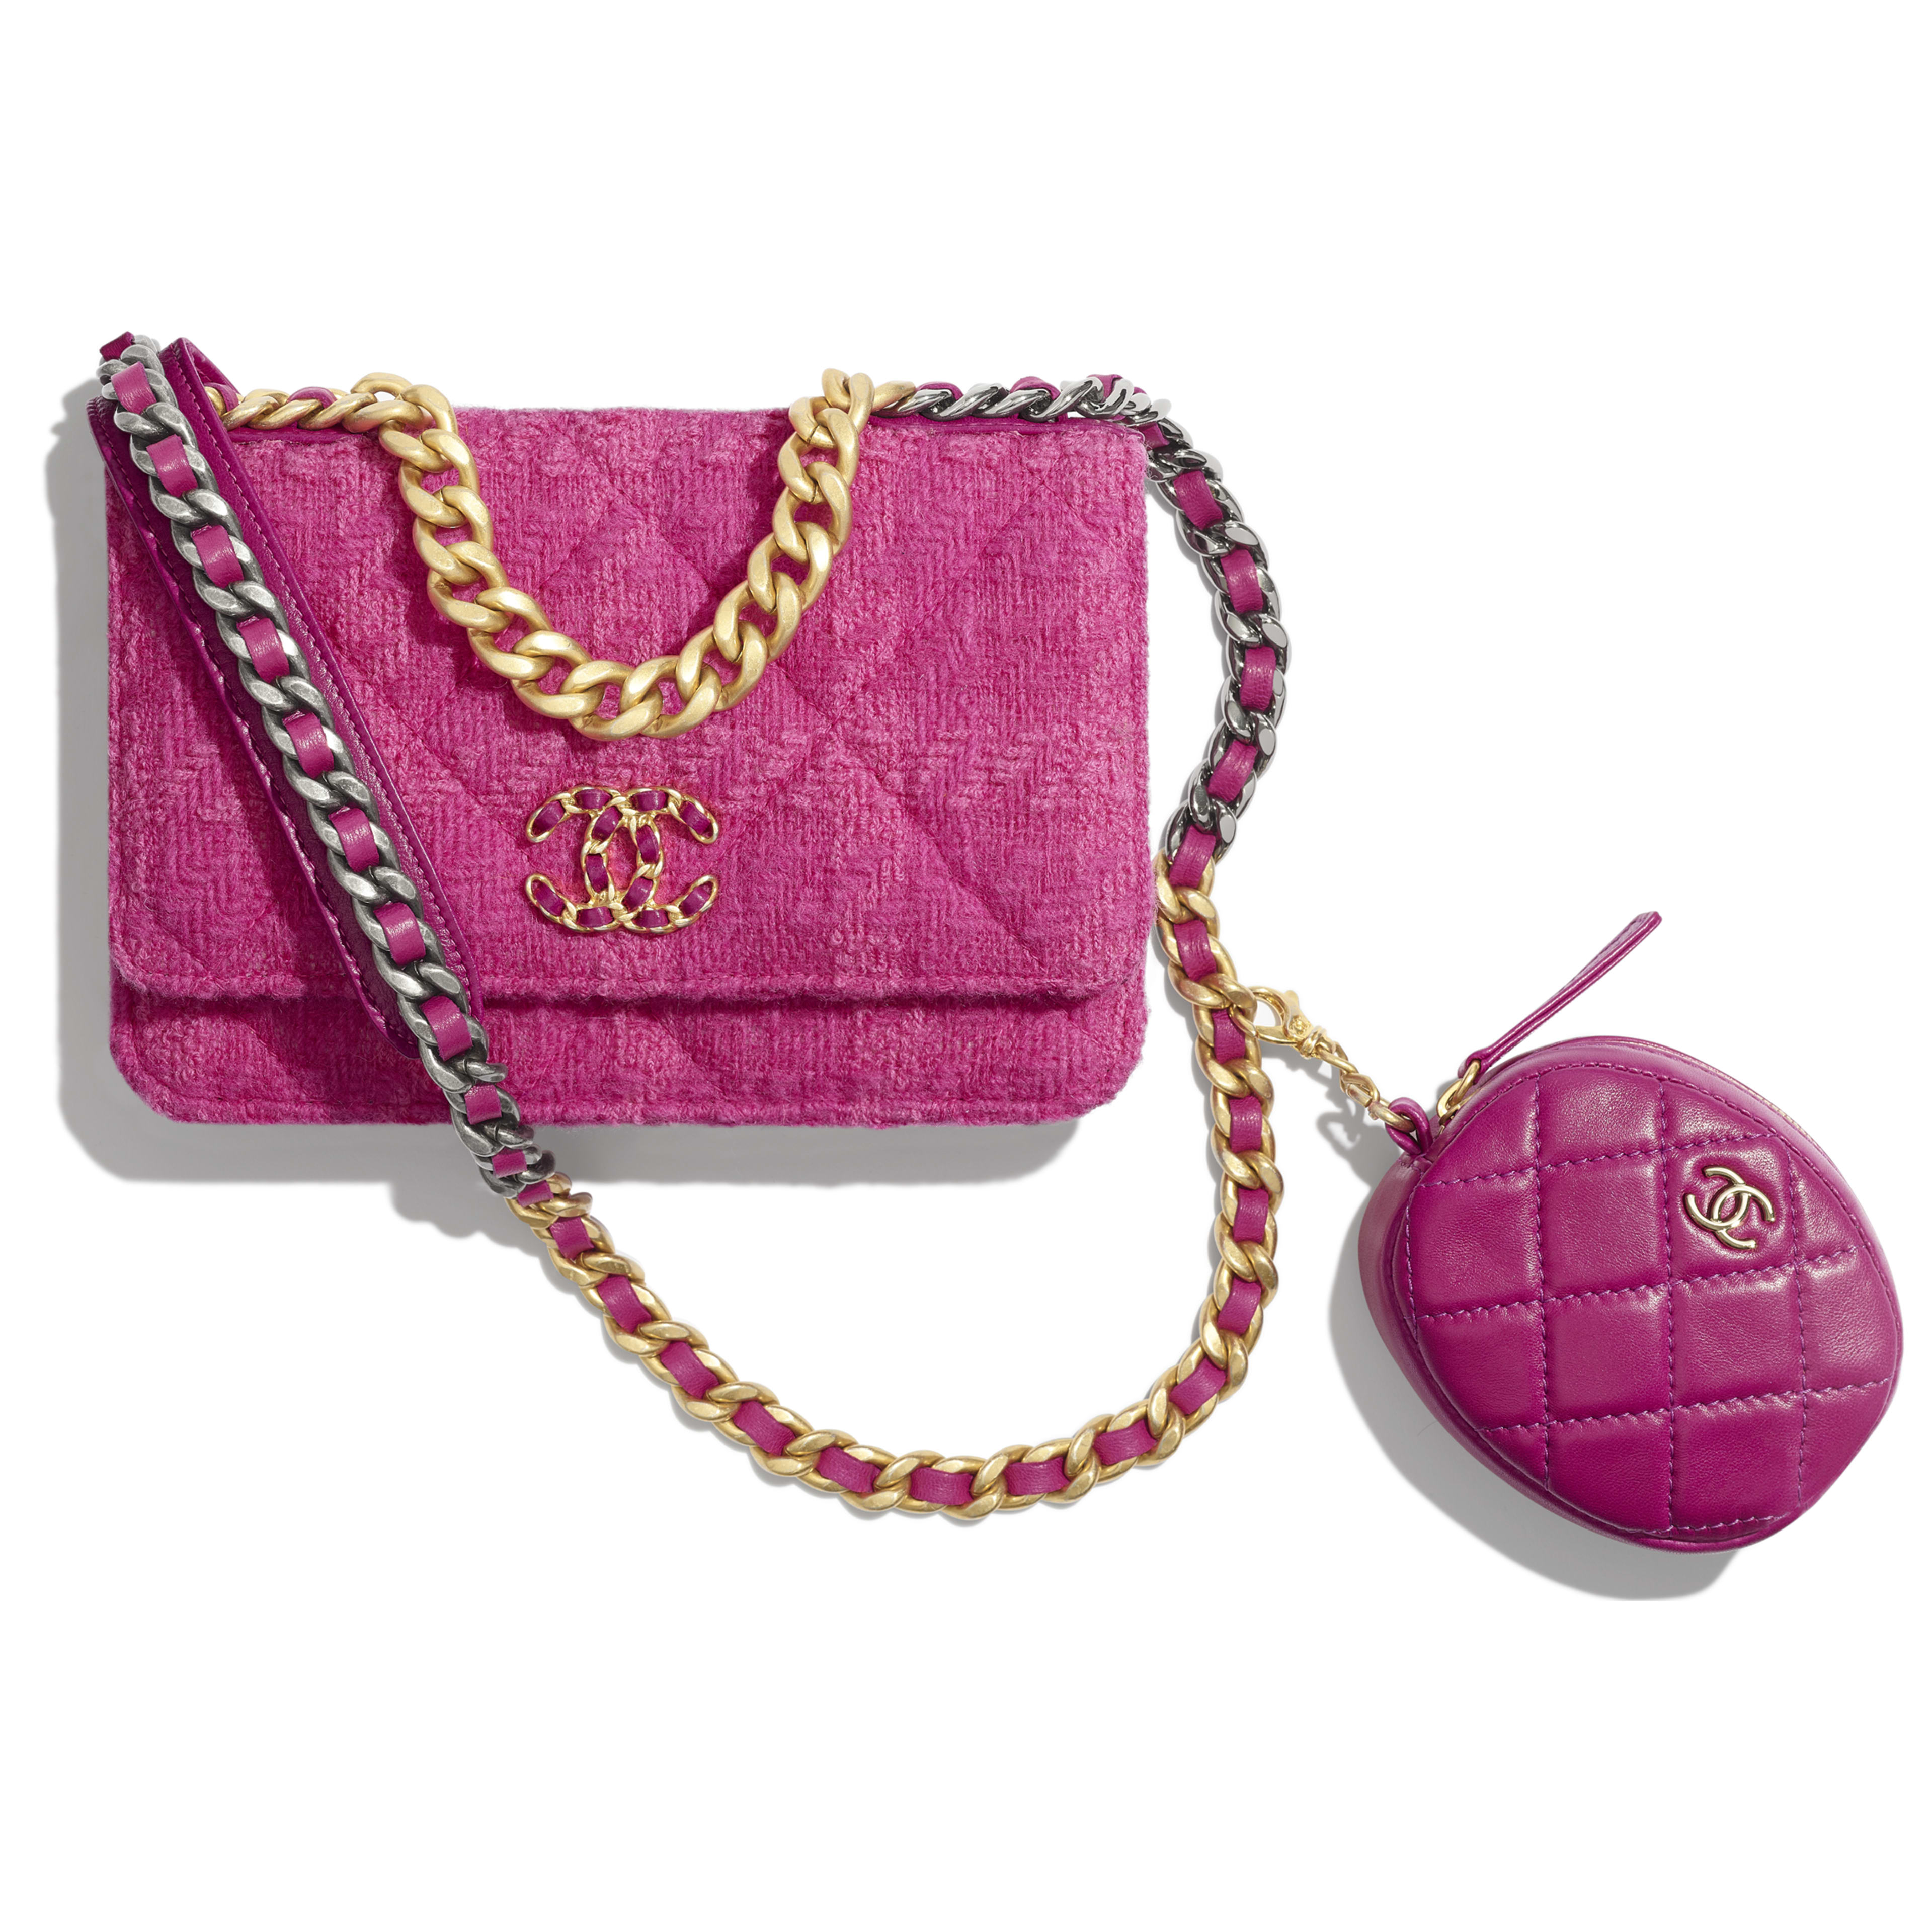 CHANEL 19 Wallet on Chain & Coin Purse - Fuchsia - Wool Tweed, Lambskin, Gold-Tone, Silver-Tone & Ruthenium-Finish Metal - Default view - see full sized version